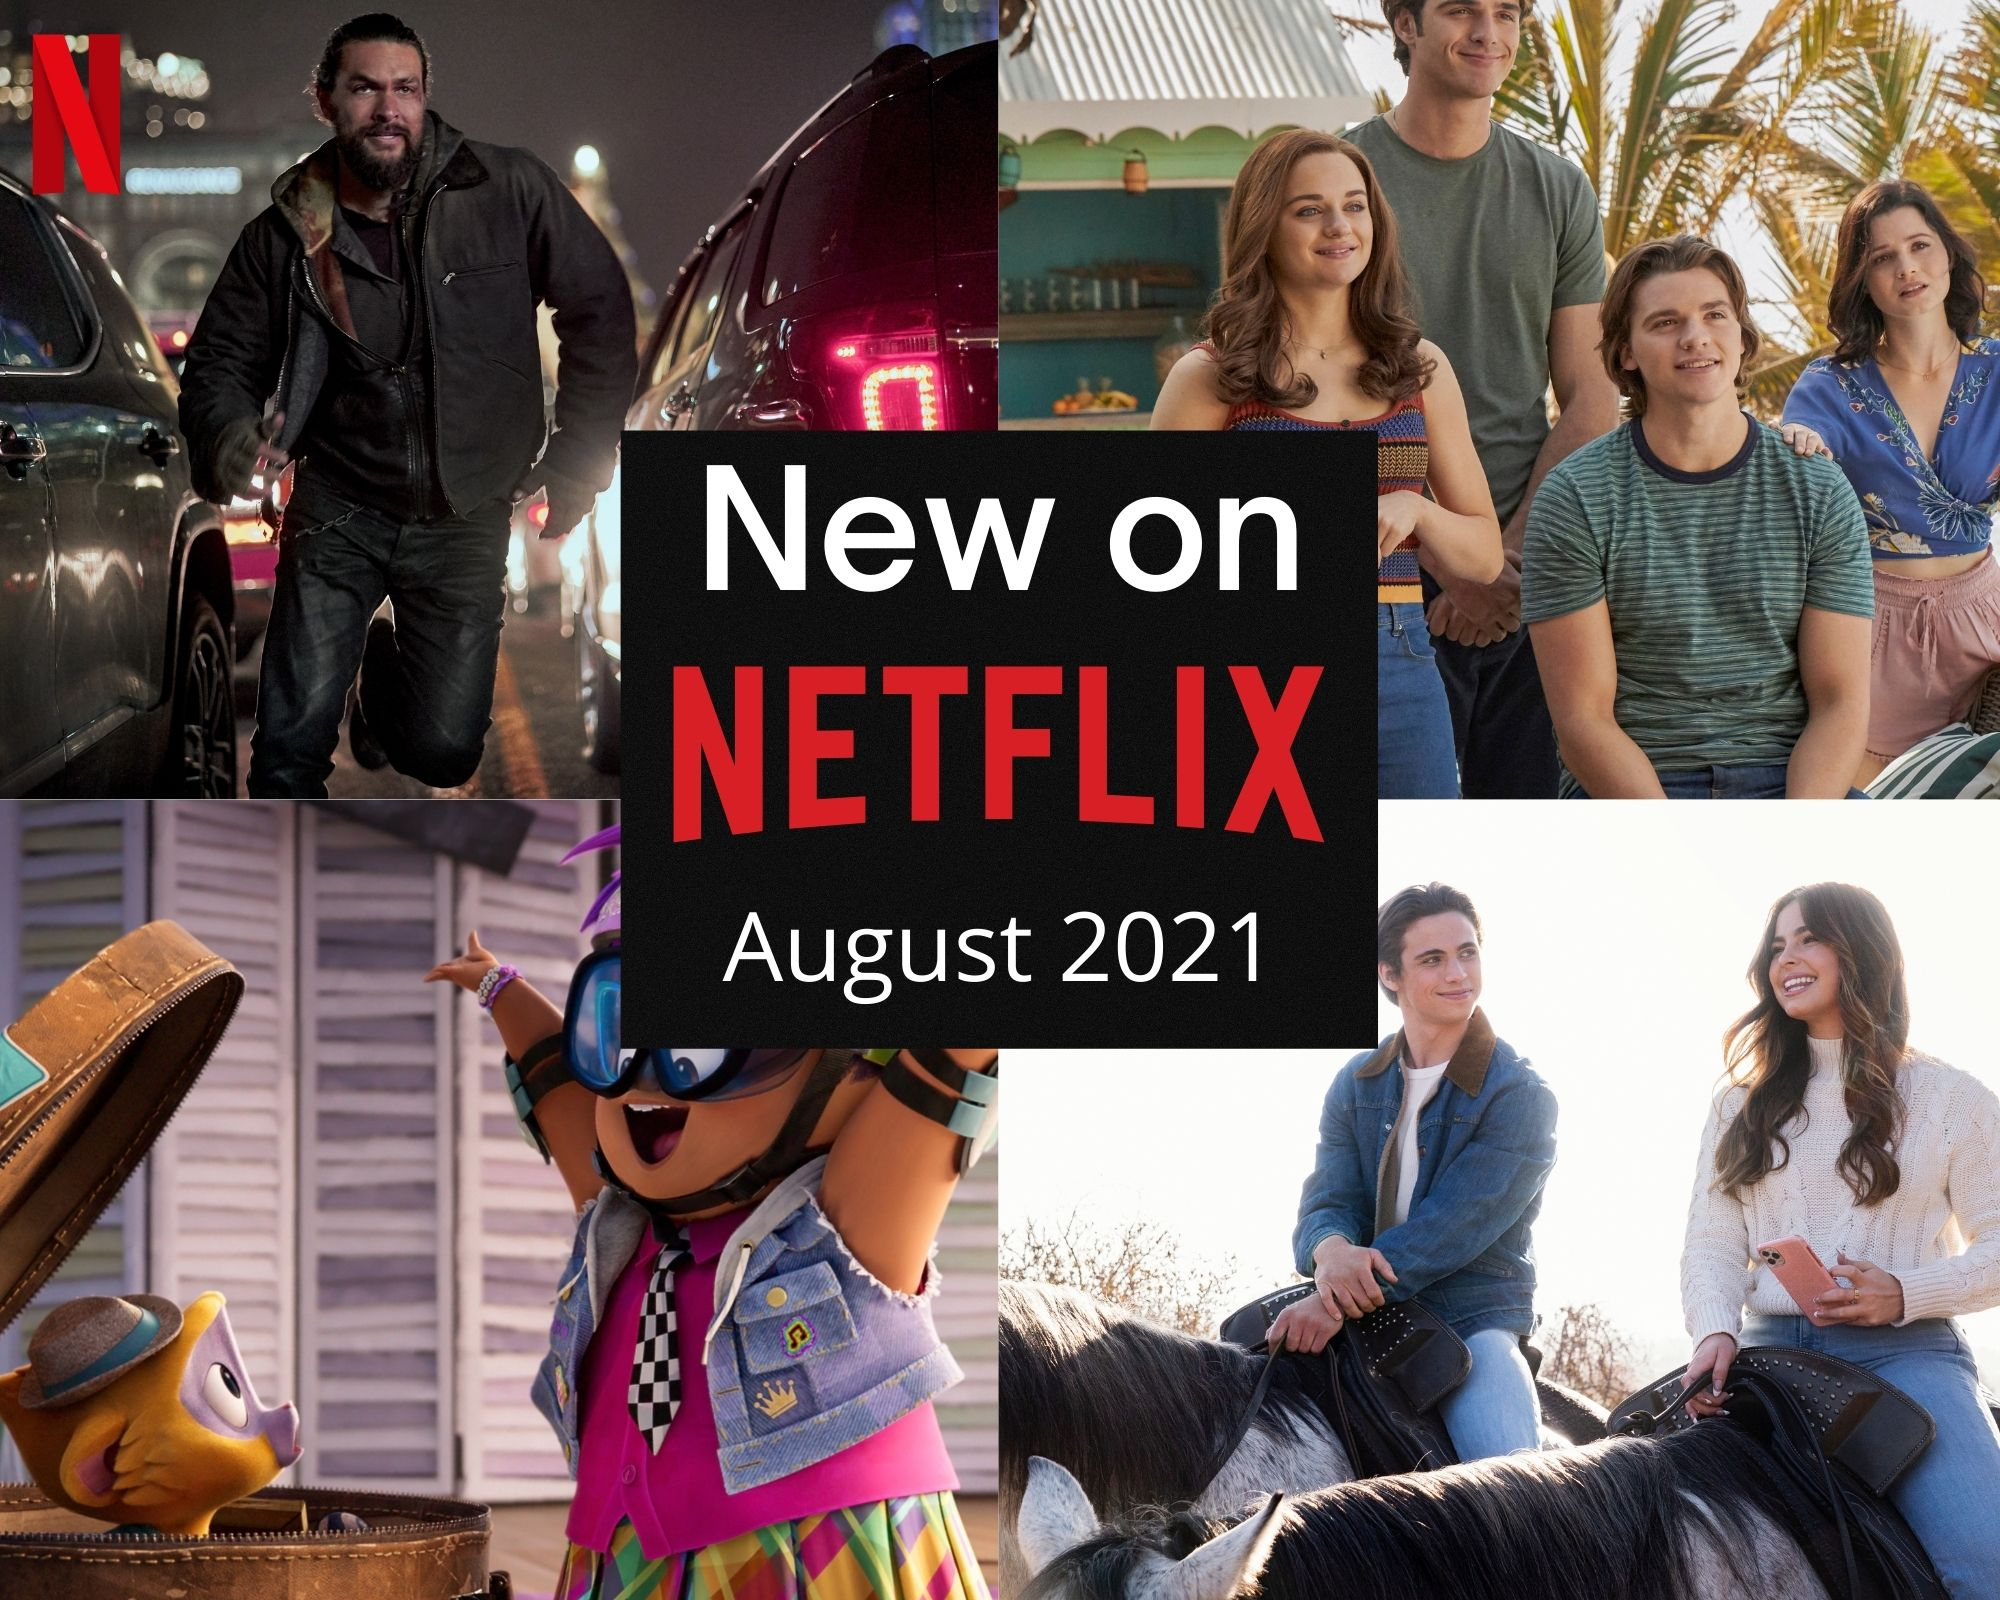 New on Netflix August 2021 collage.